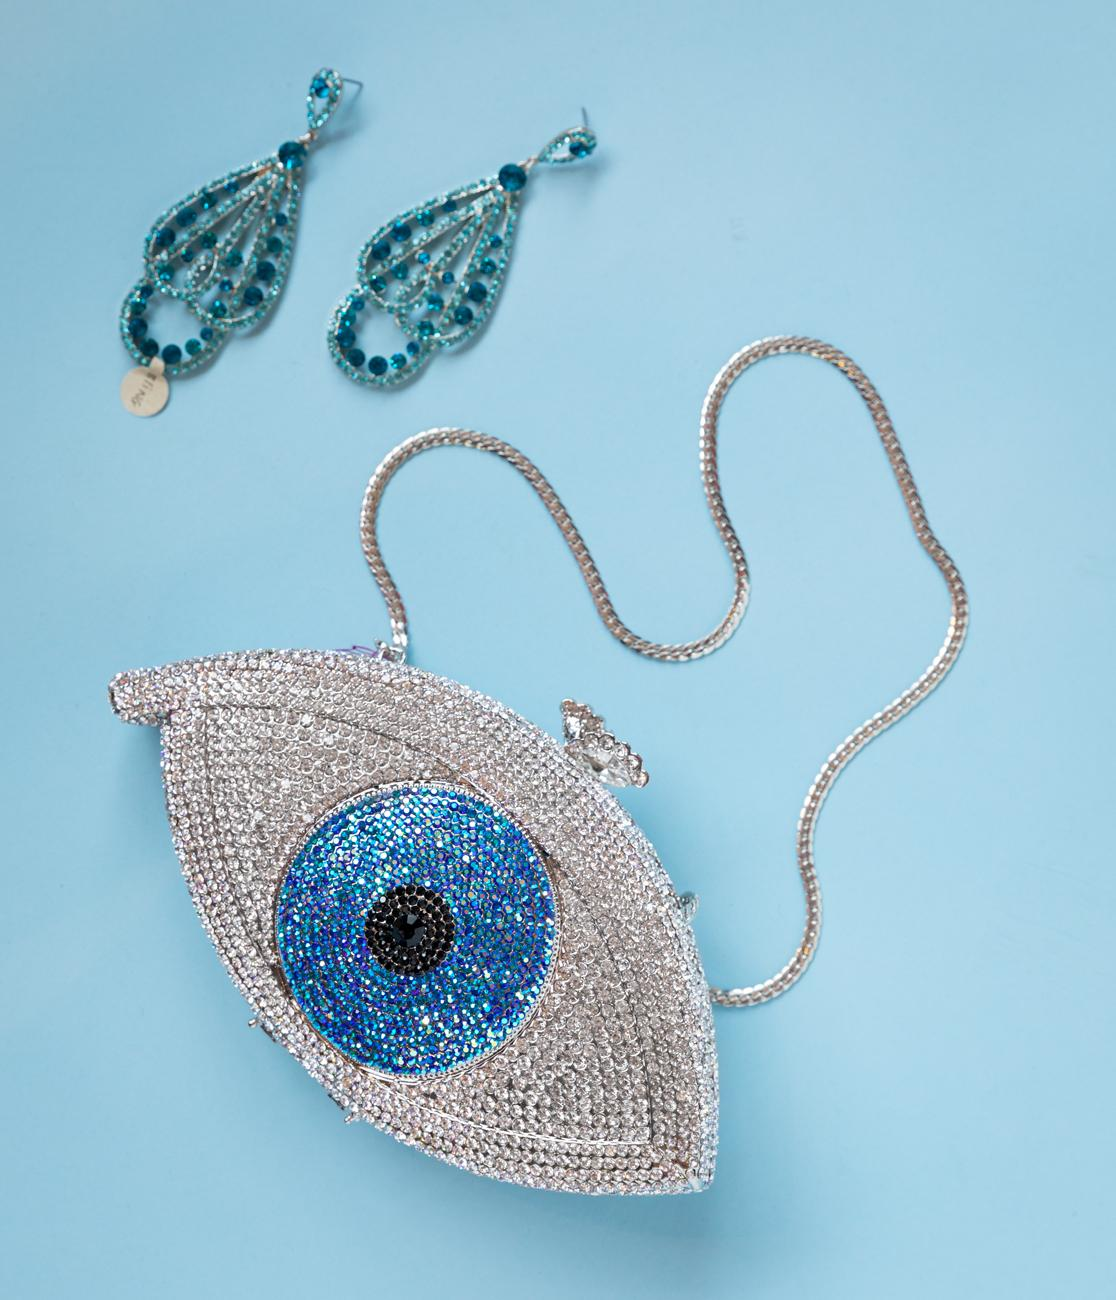 Evil eye cocktail clutch and gemstone studded earrings / Image: Marlene Rounds // Published: 9.30.18